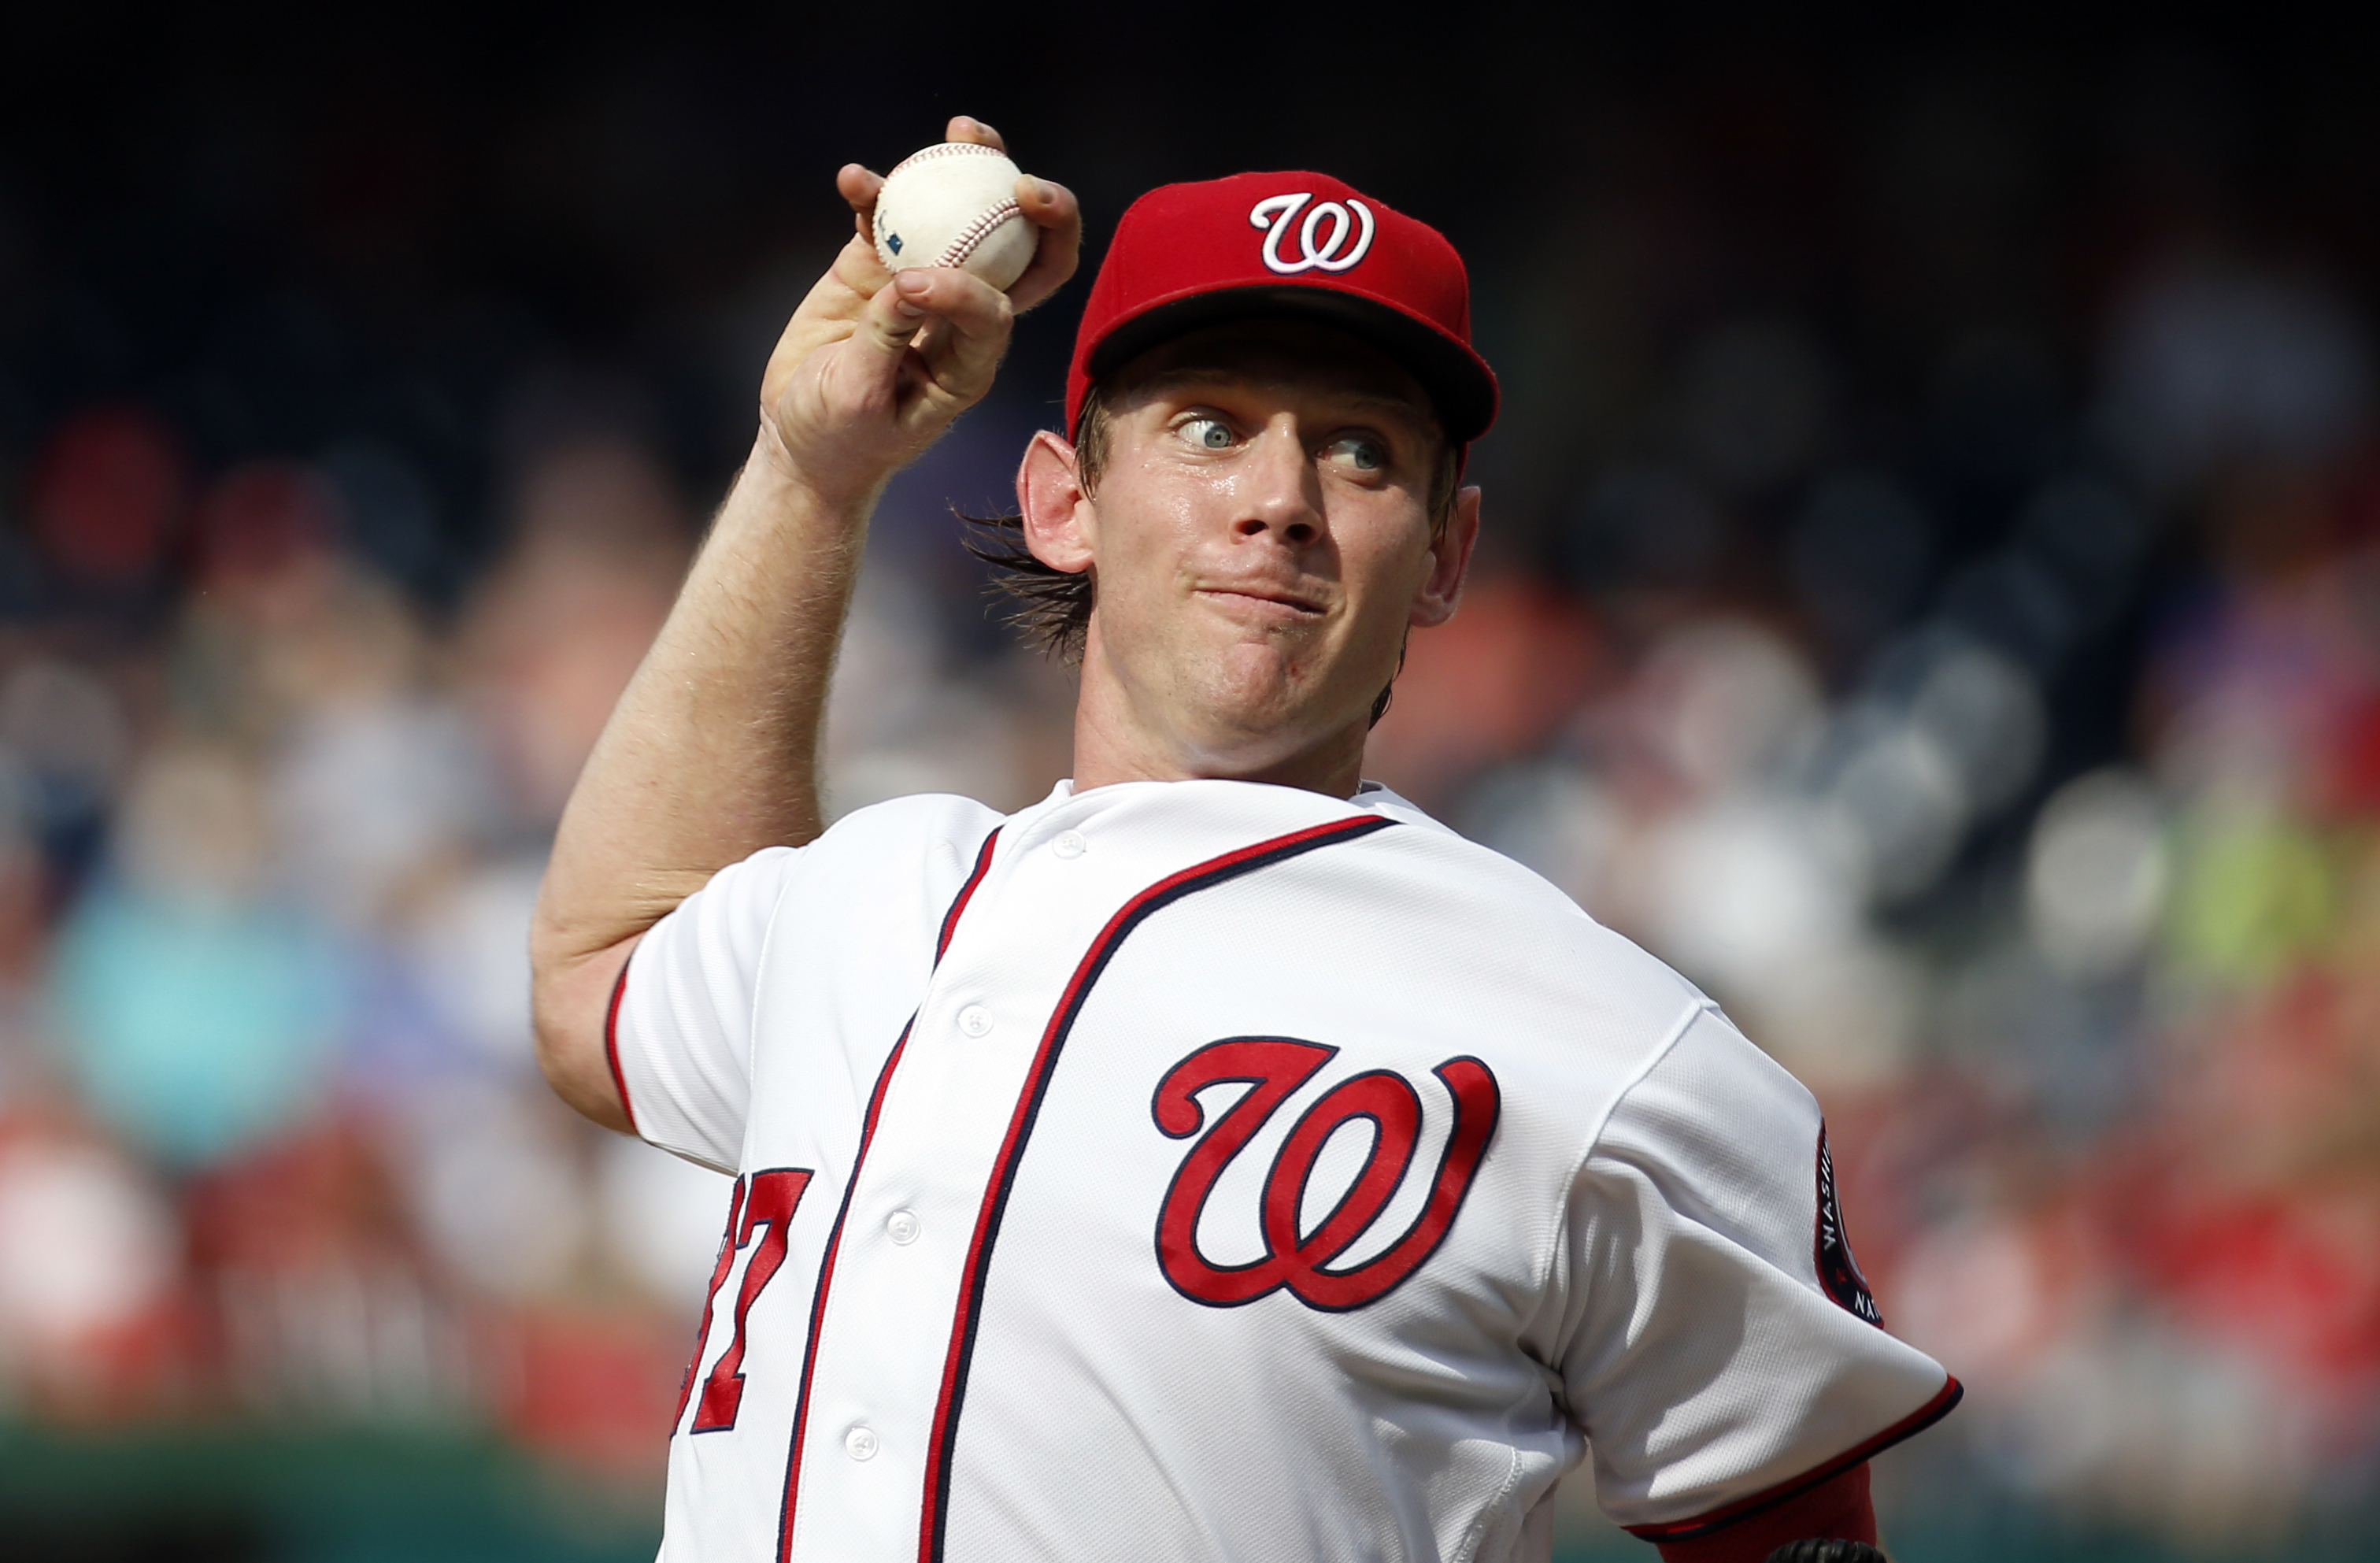 Washington Nationals starting pitcher Stephen Strasburg throws during the fourth inning of a baseball game against the Chicago Cubs at Nationals Park, Wednesday, June 15, 2016, in Washington. (AP Photo/Alex Brandon)